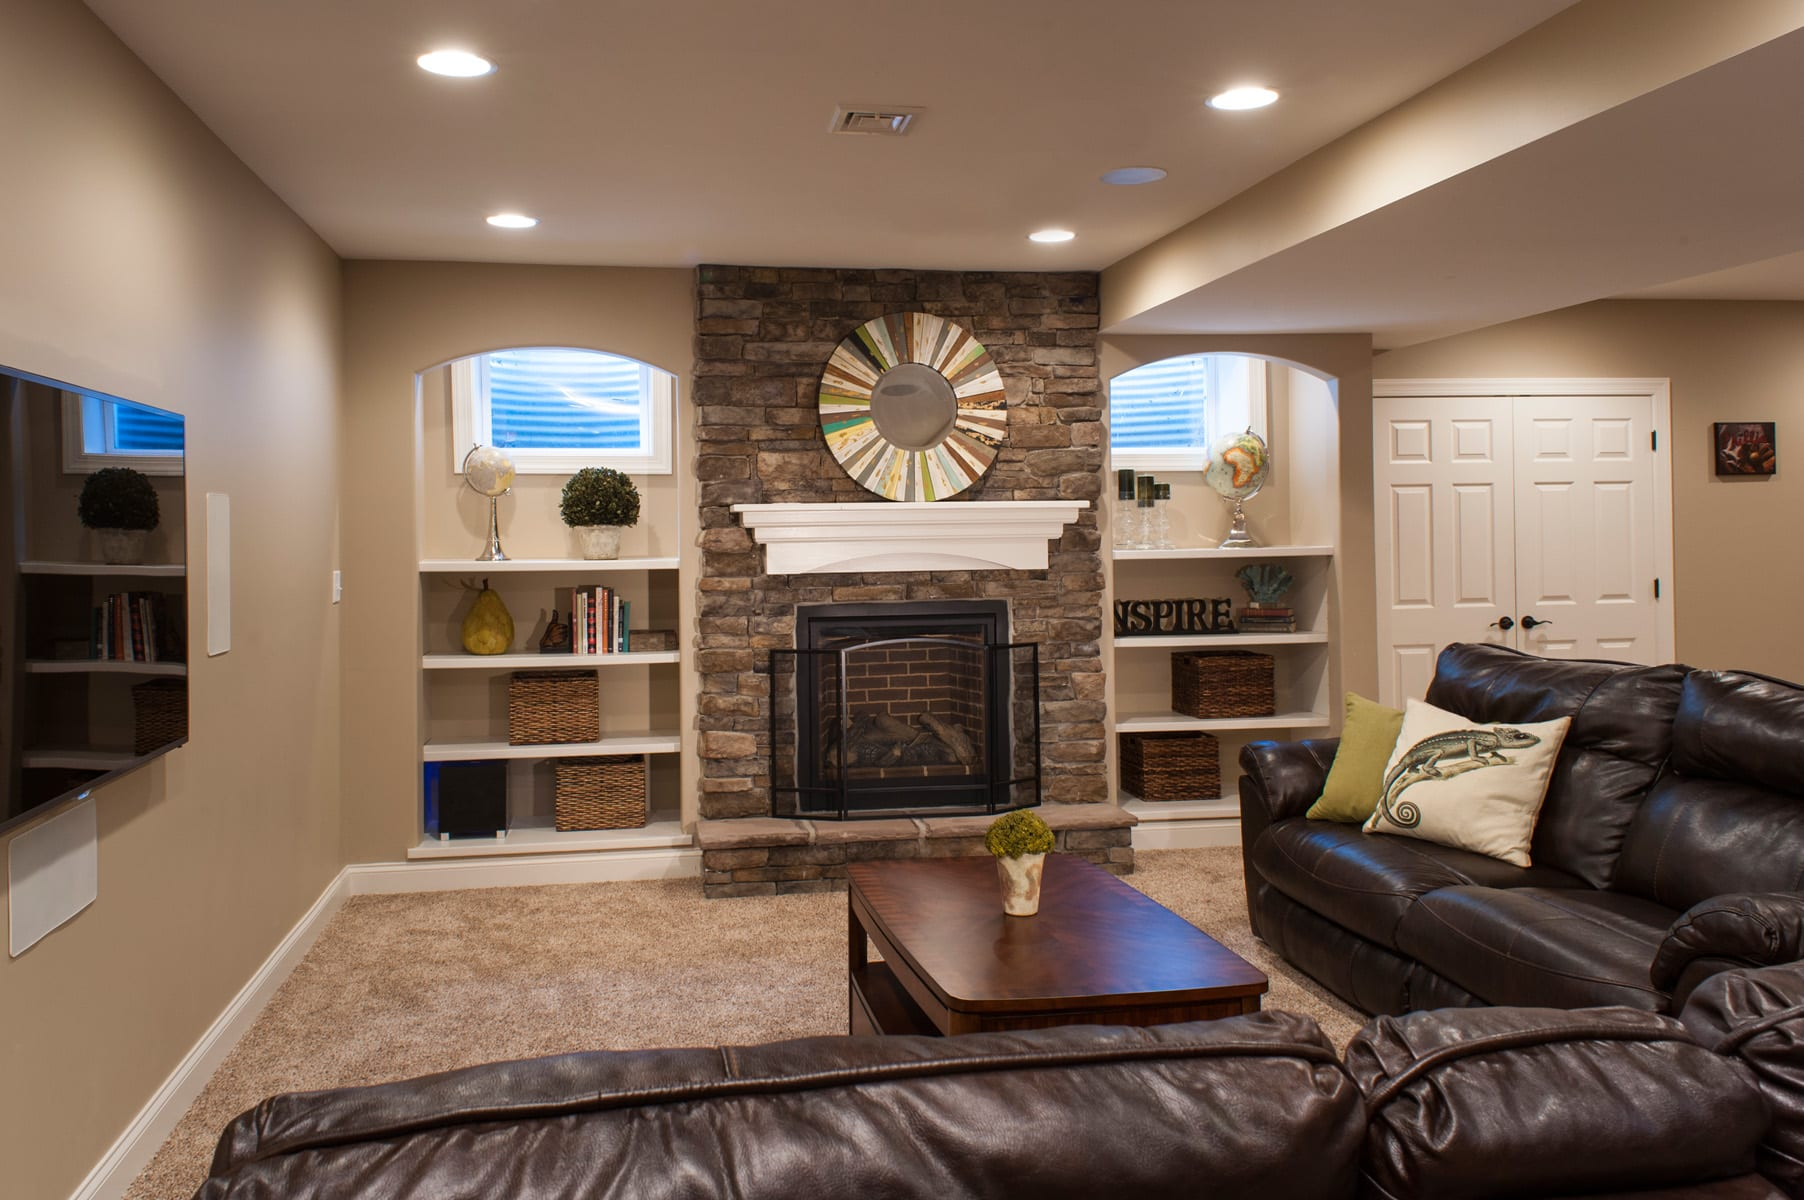 Basement remodeling photo gallery by foxbuilt inc - Basement ideas for small spaces pict ...